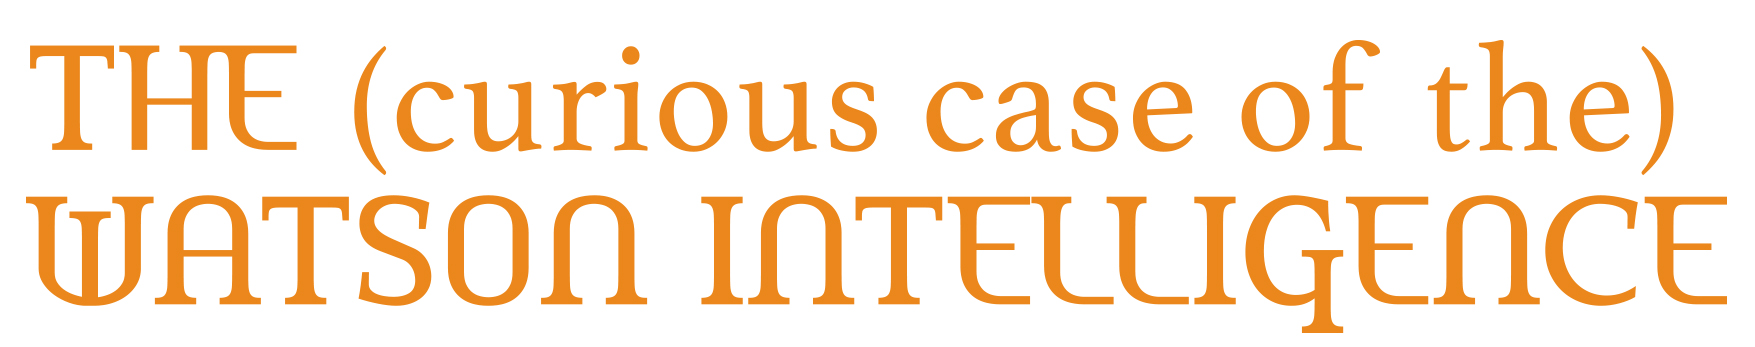 curious-case-watson-intelligence-color